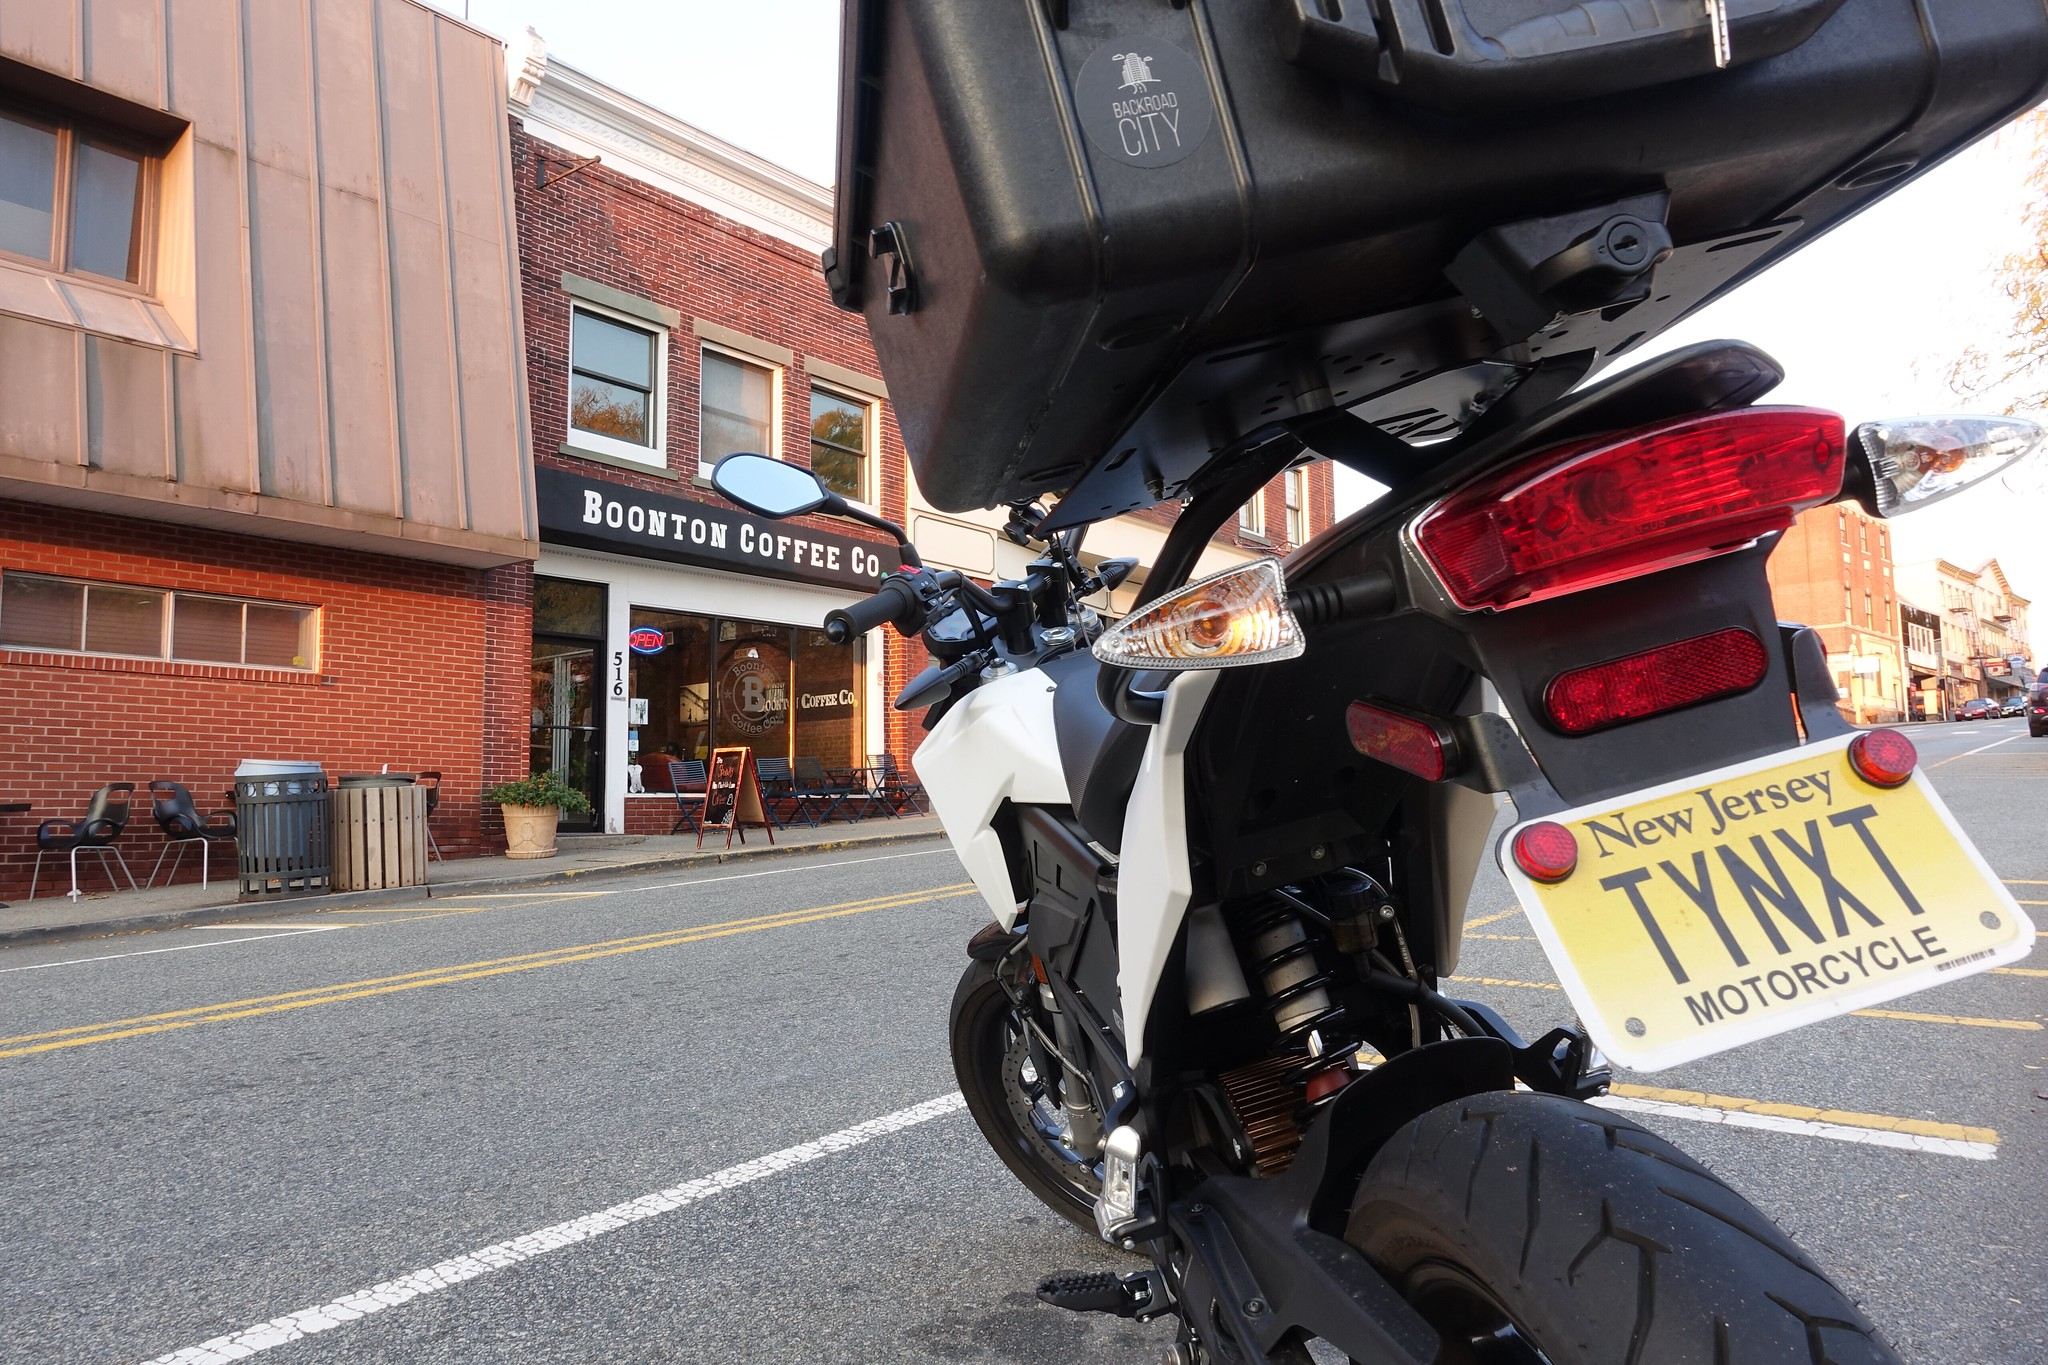 Motorcycle parked at Boonton Coffee